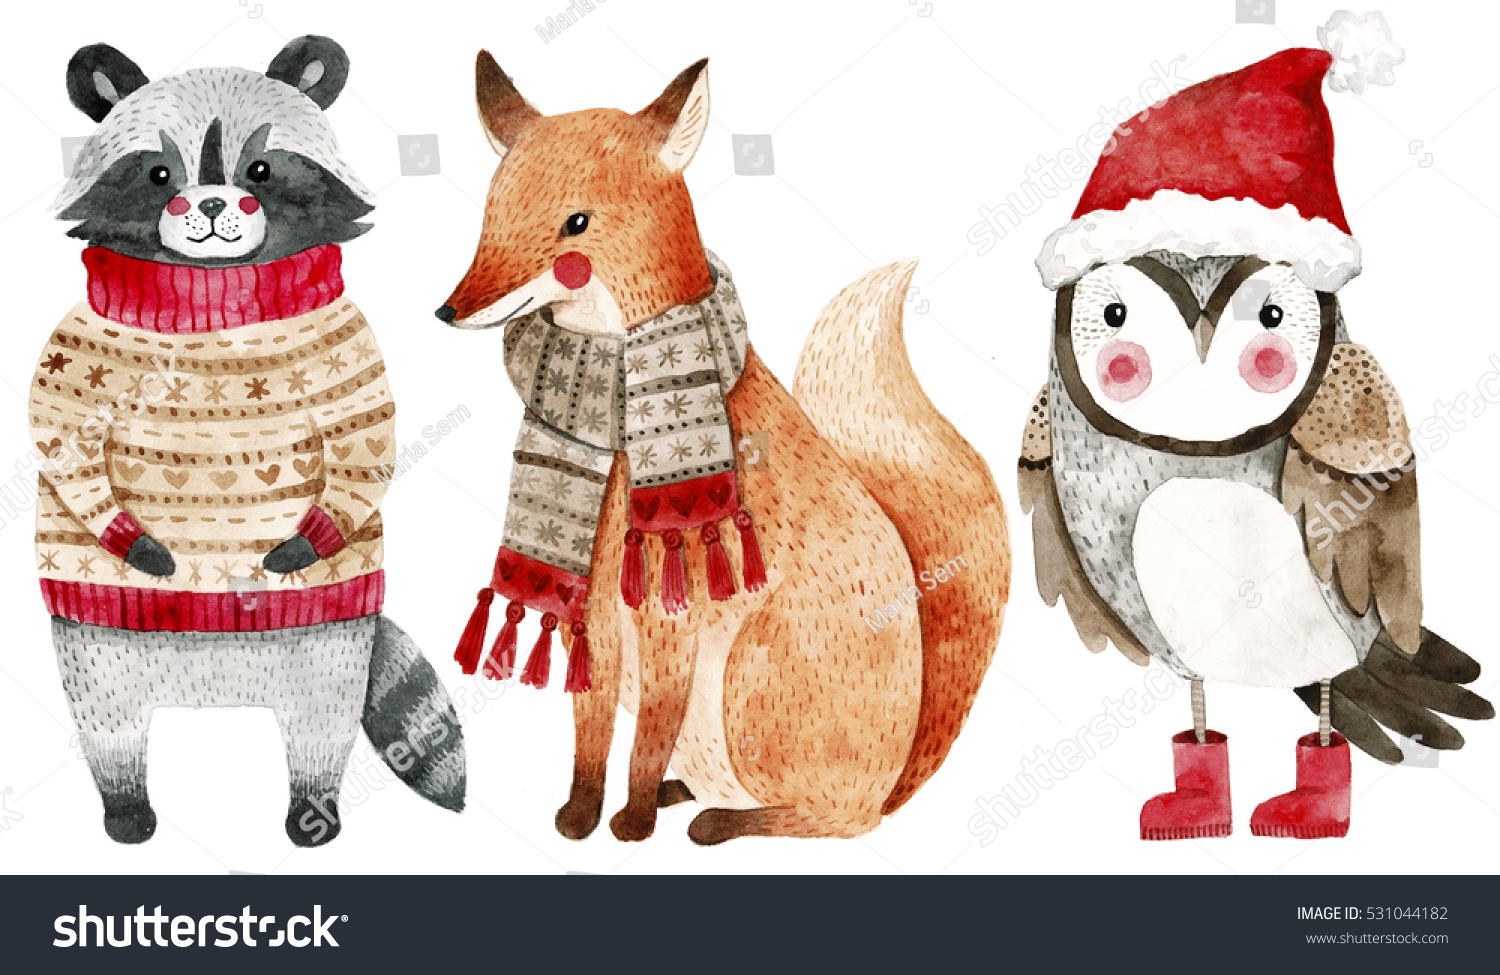 Fox with a hat new year or christmas animal isolated on white - Christmas Watercolor Animals Set Fox Raccoon And Bird Like Owl Cute Kids Illustration